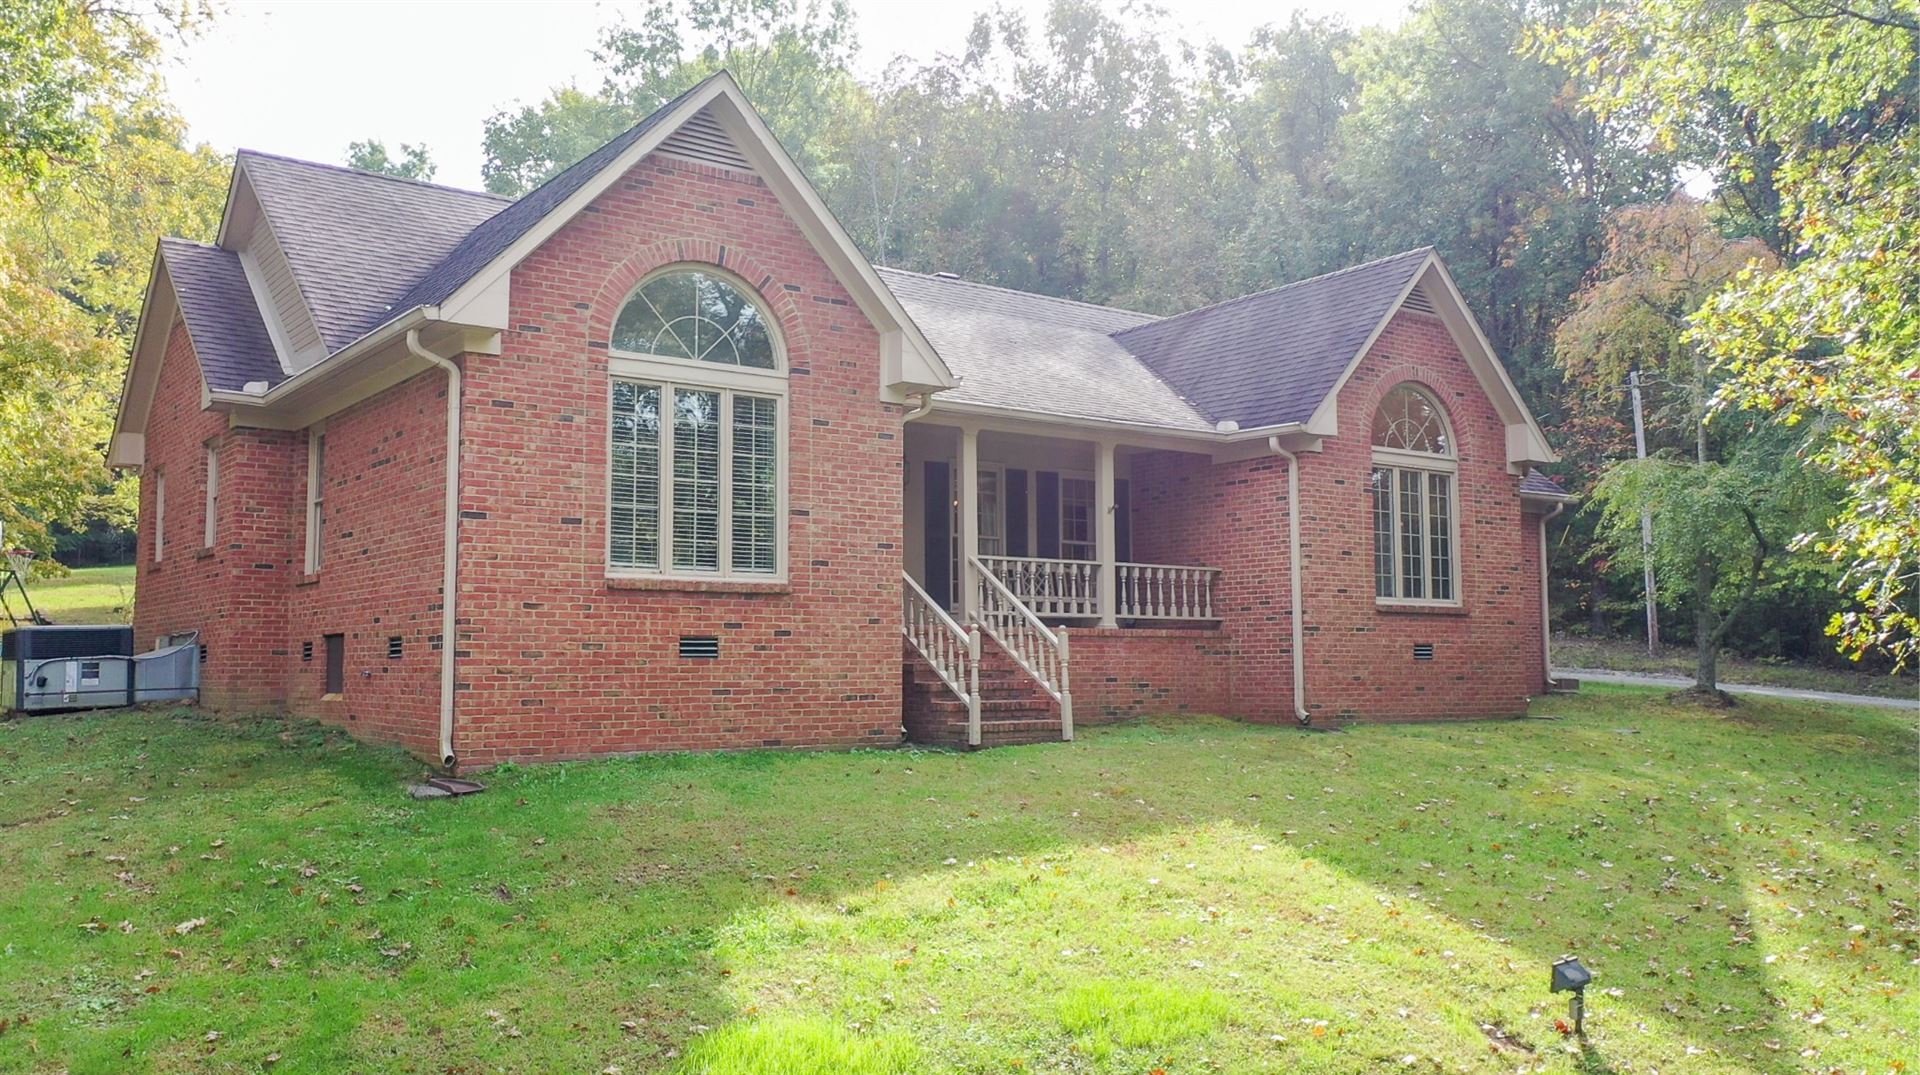 305 Brown Ln, Shelbyville, TN 37160 - MLS#: 2197332